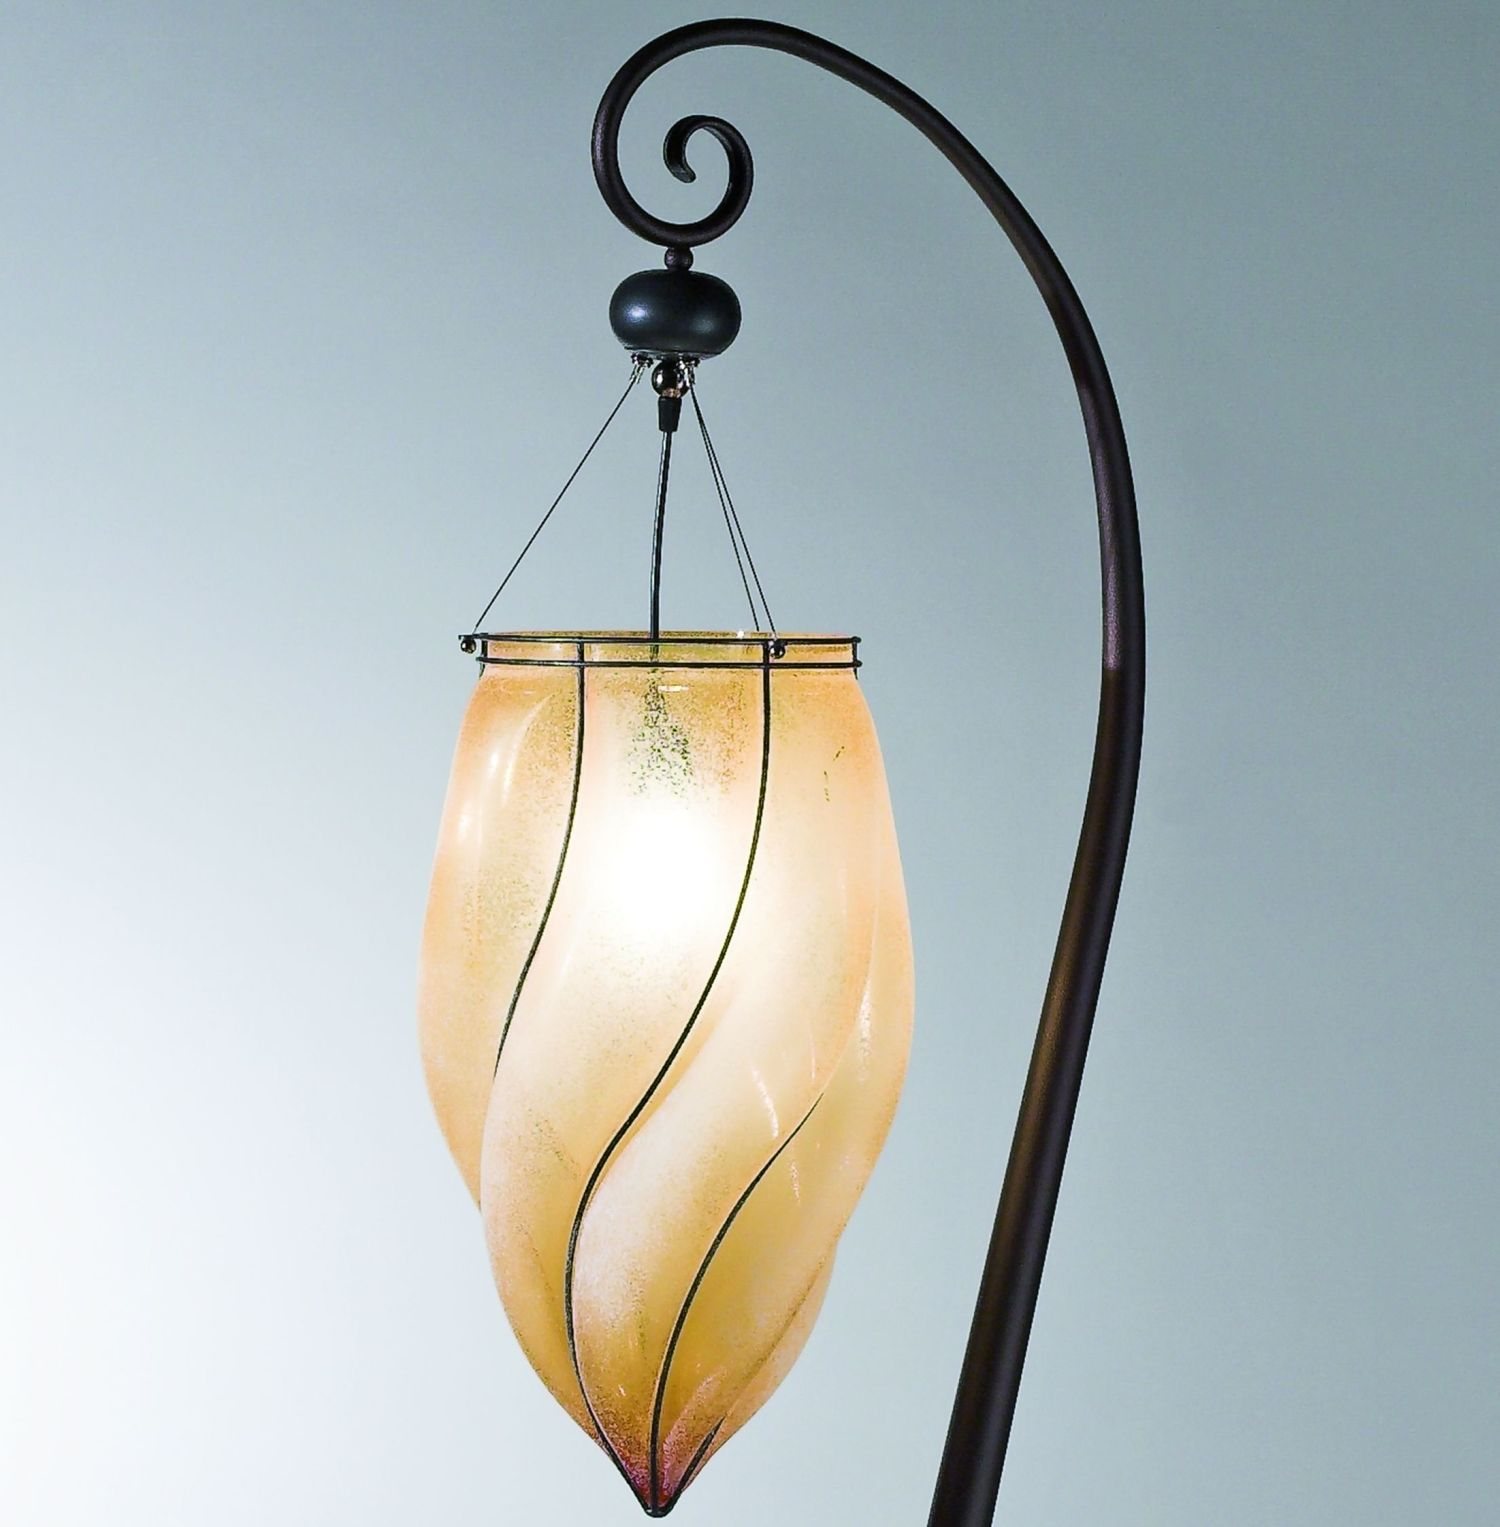 Rustic Venetian floor light with handblown amber scavo glass diffuser